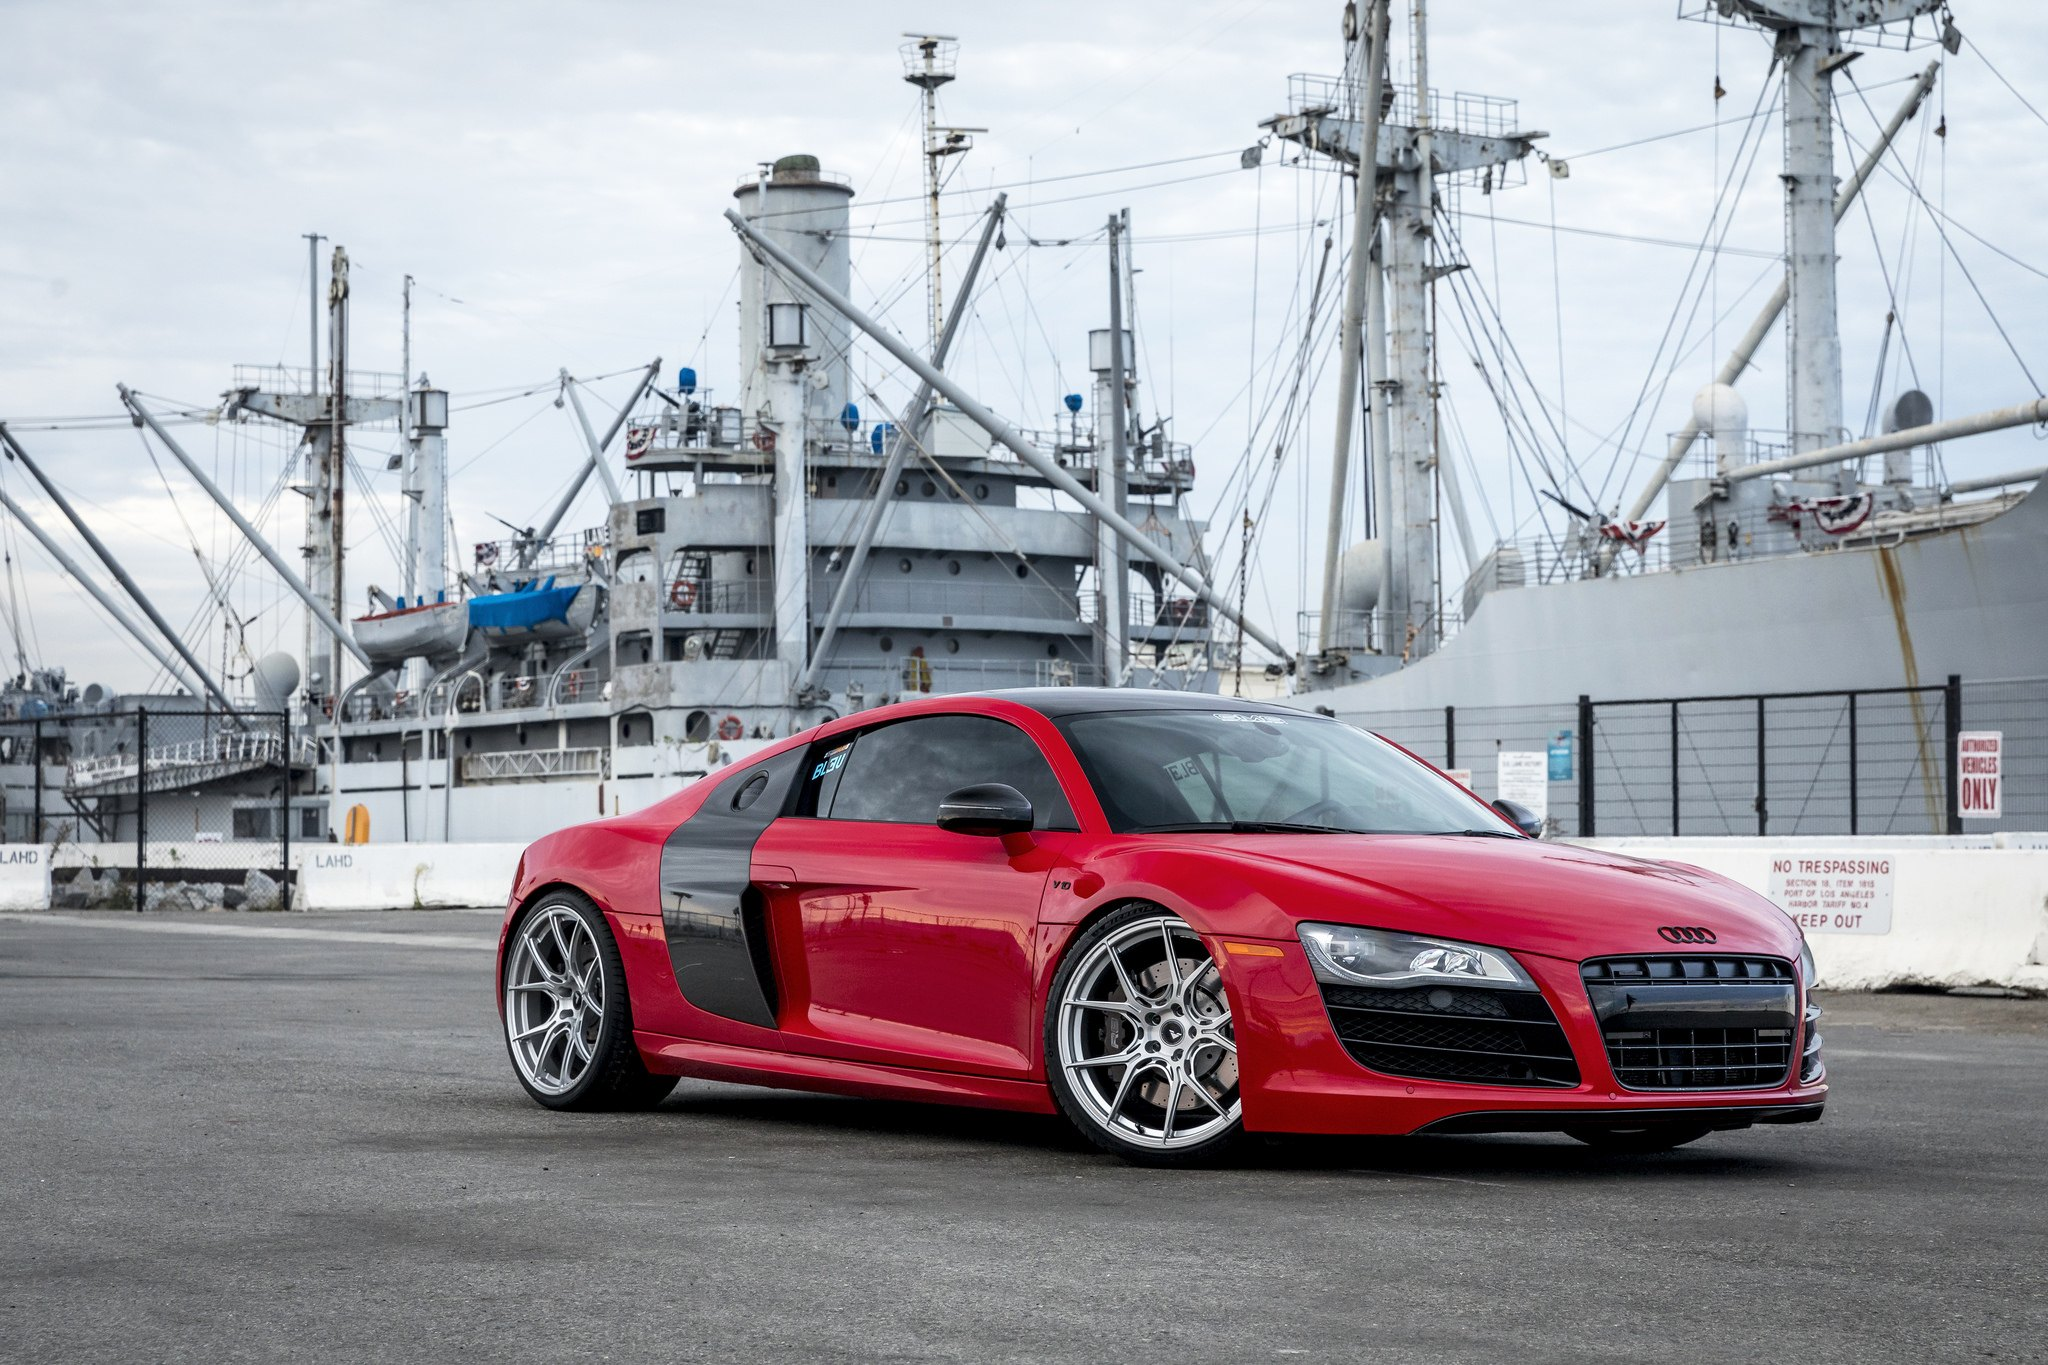 Chrome Vorsteiner Rims Looking Great On Red Audi R8 Carid Com Gallery